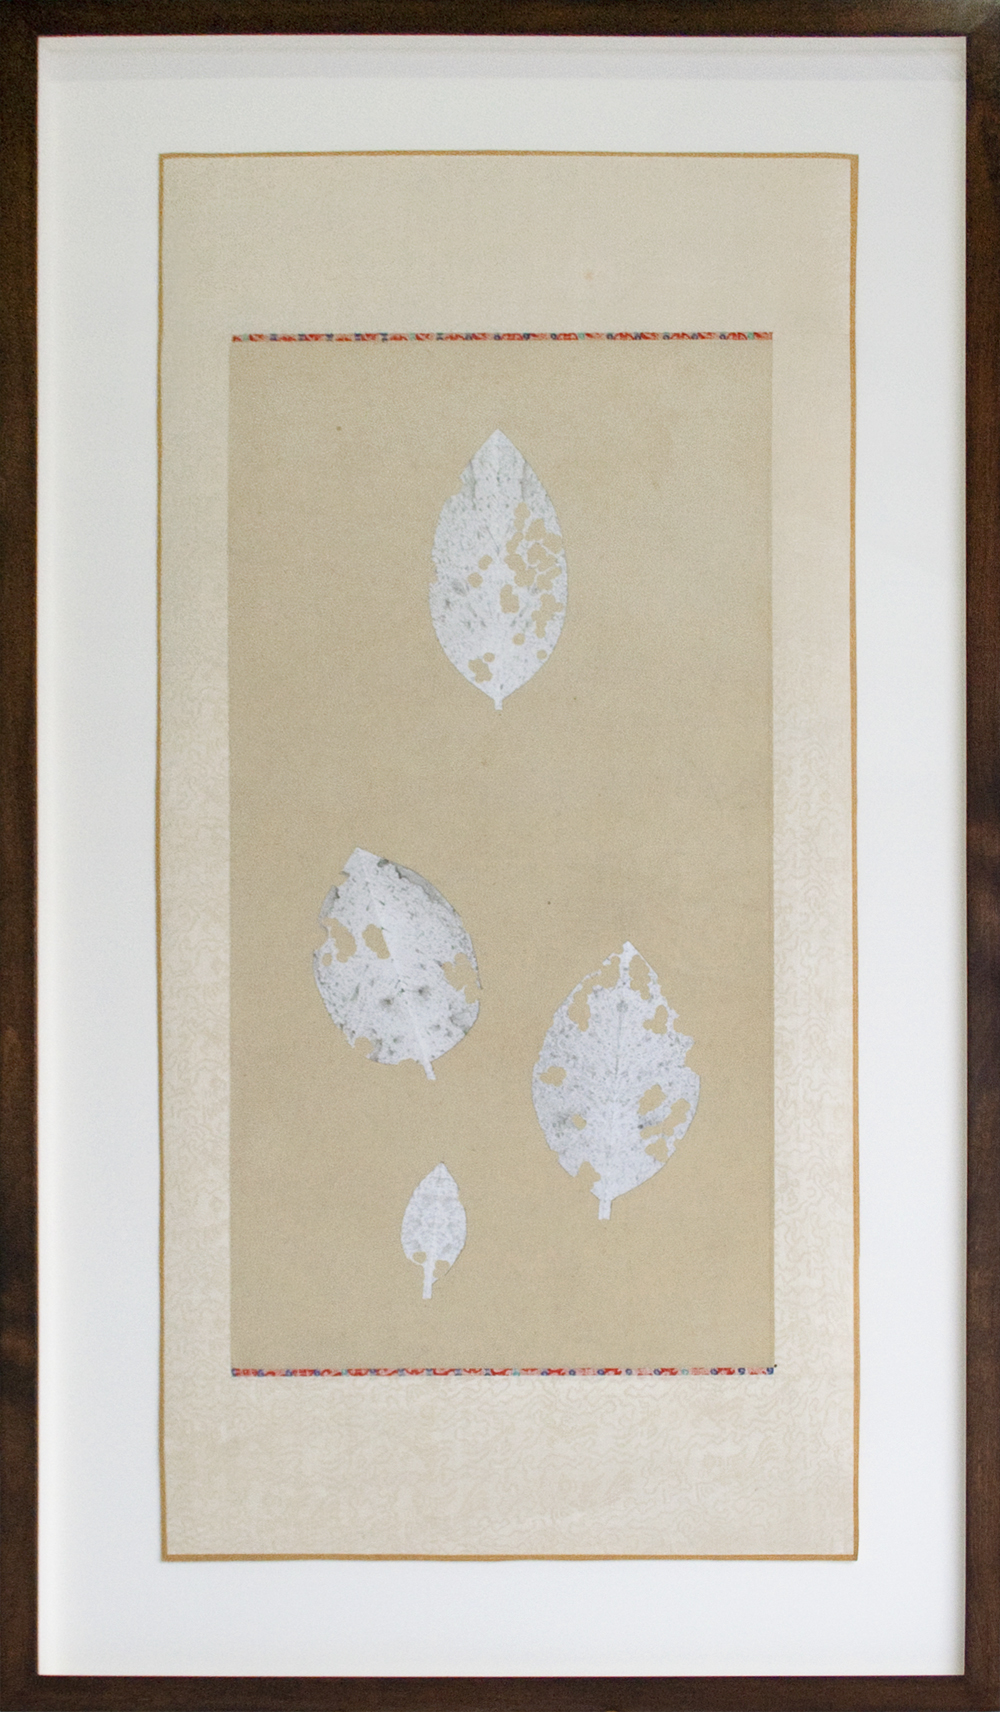 Bruce Conner (Anonymous) LEAVINGS 2001 ink and paper on cloth and paper scroll 36 5/16 x 17 1/2 inches